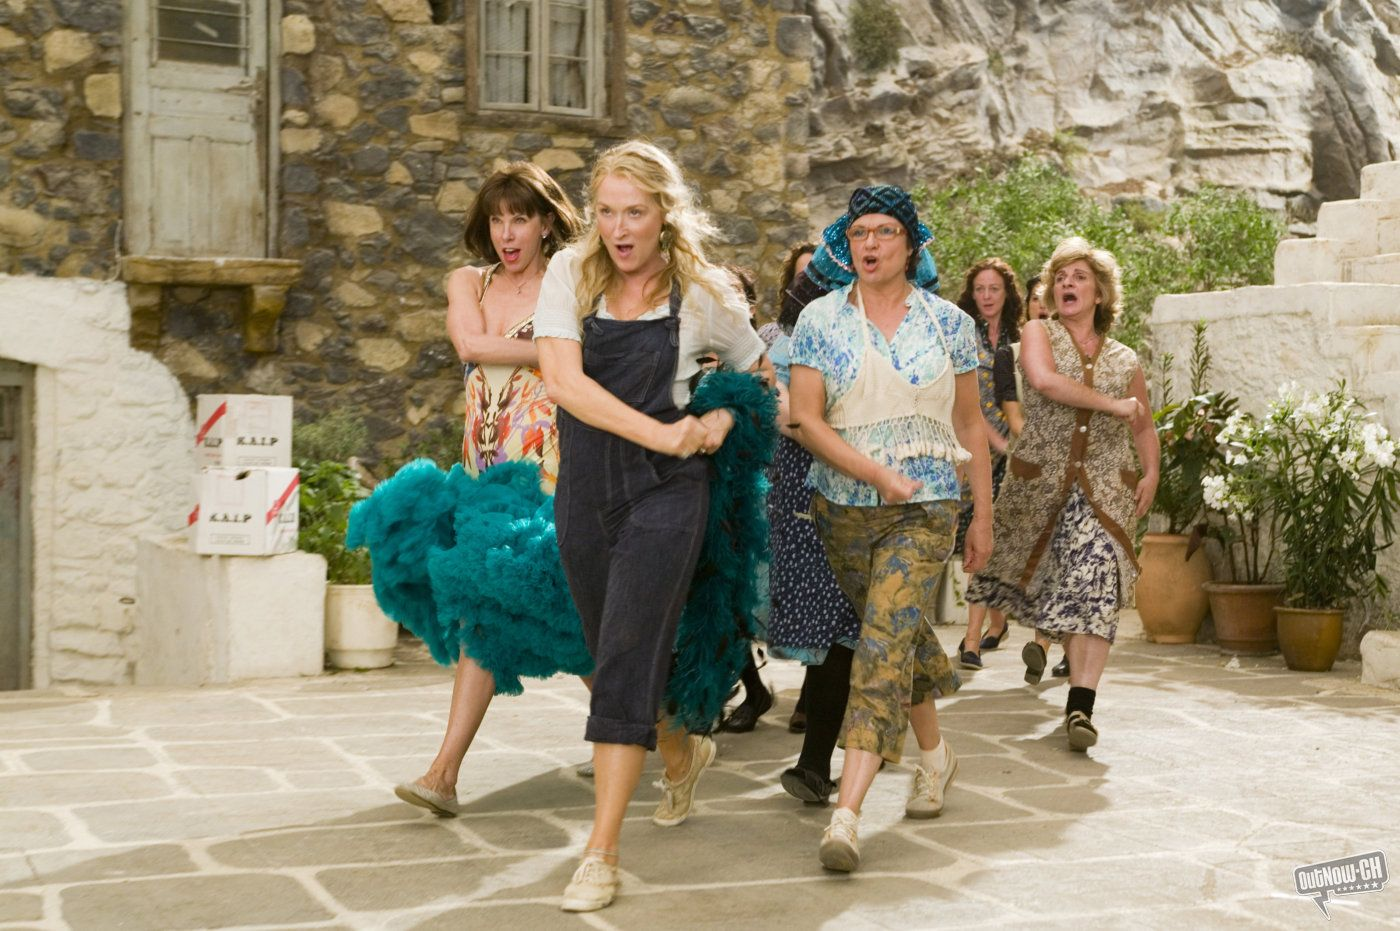 Mamma Mia 3 release date, songs, cast, dads, plot and everything you